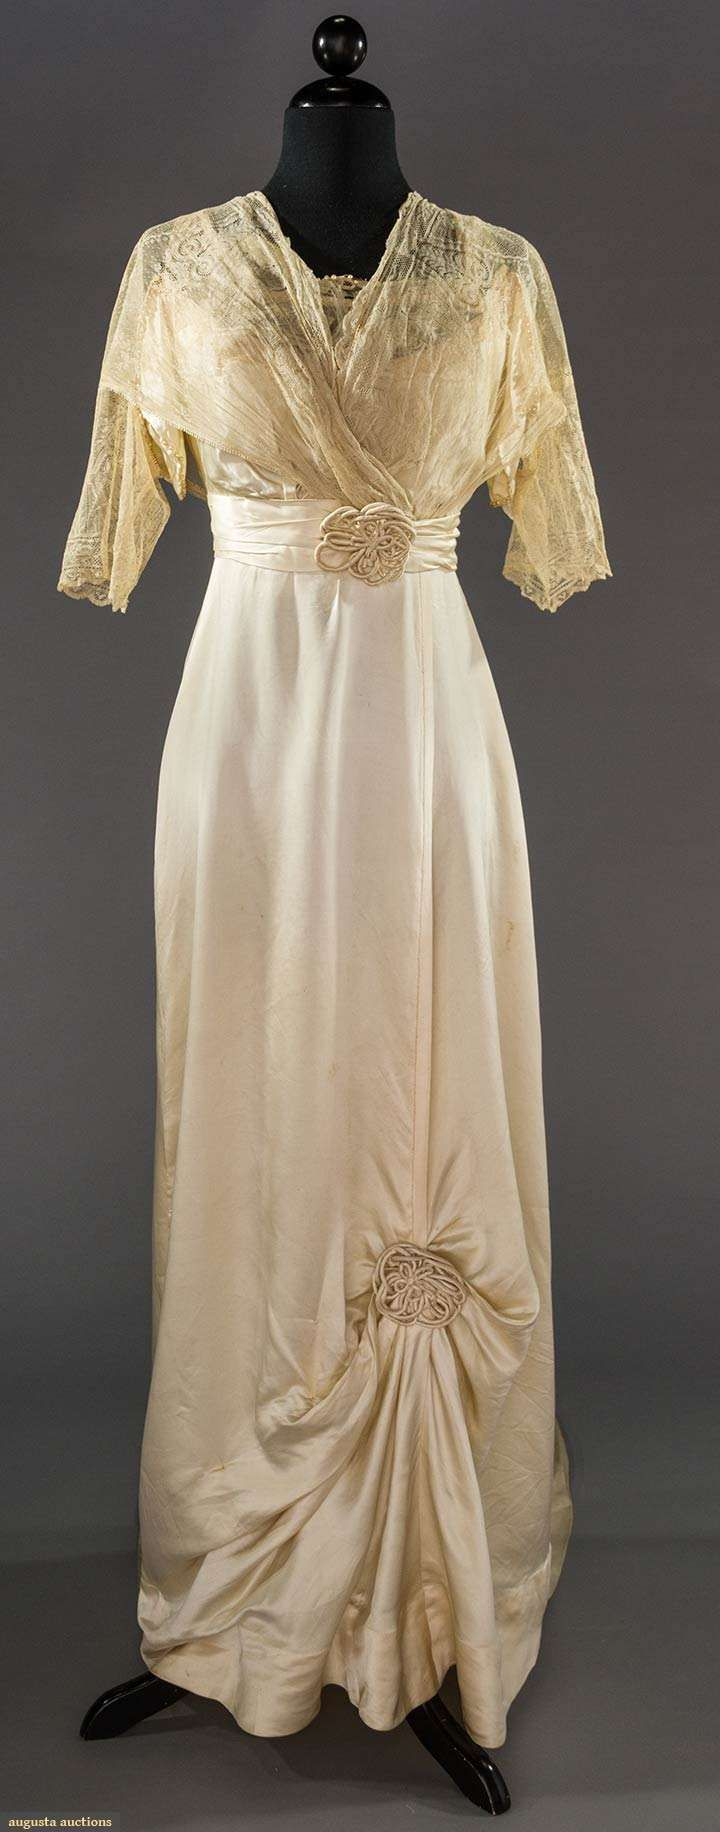 1314 best wedding gowns: 1900s images on pinterest | vintage